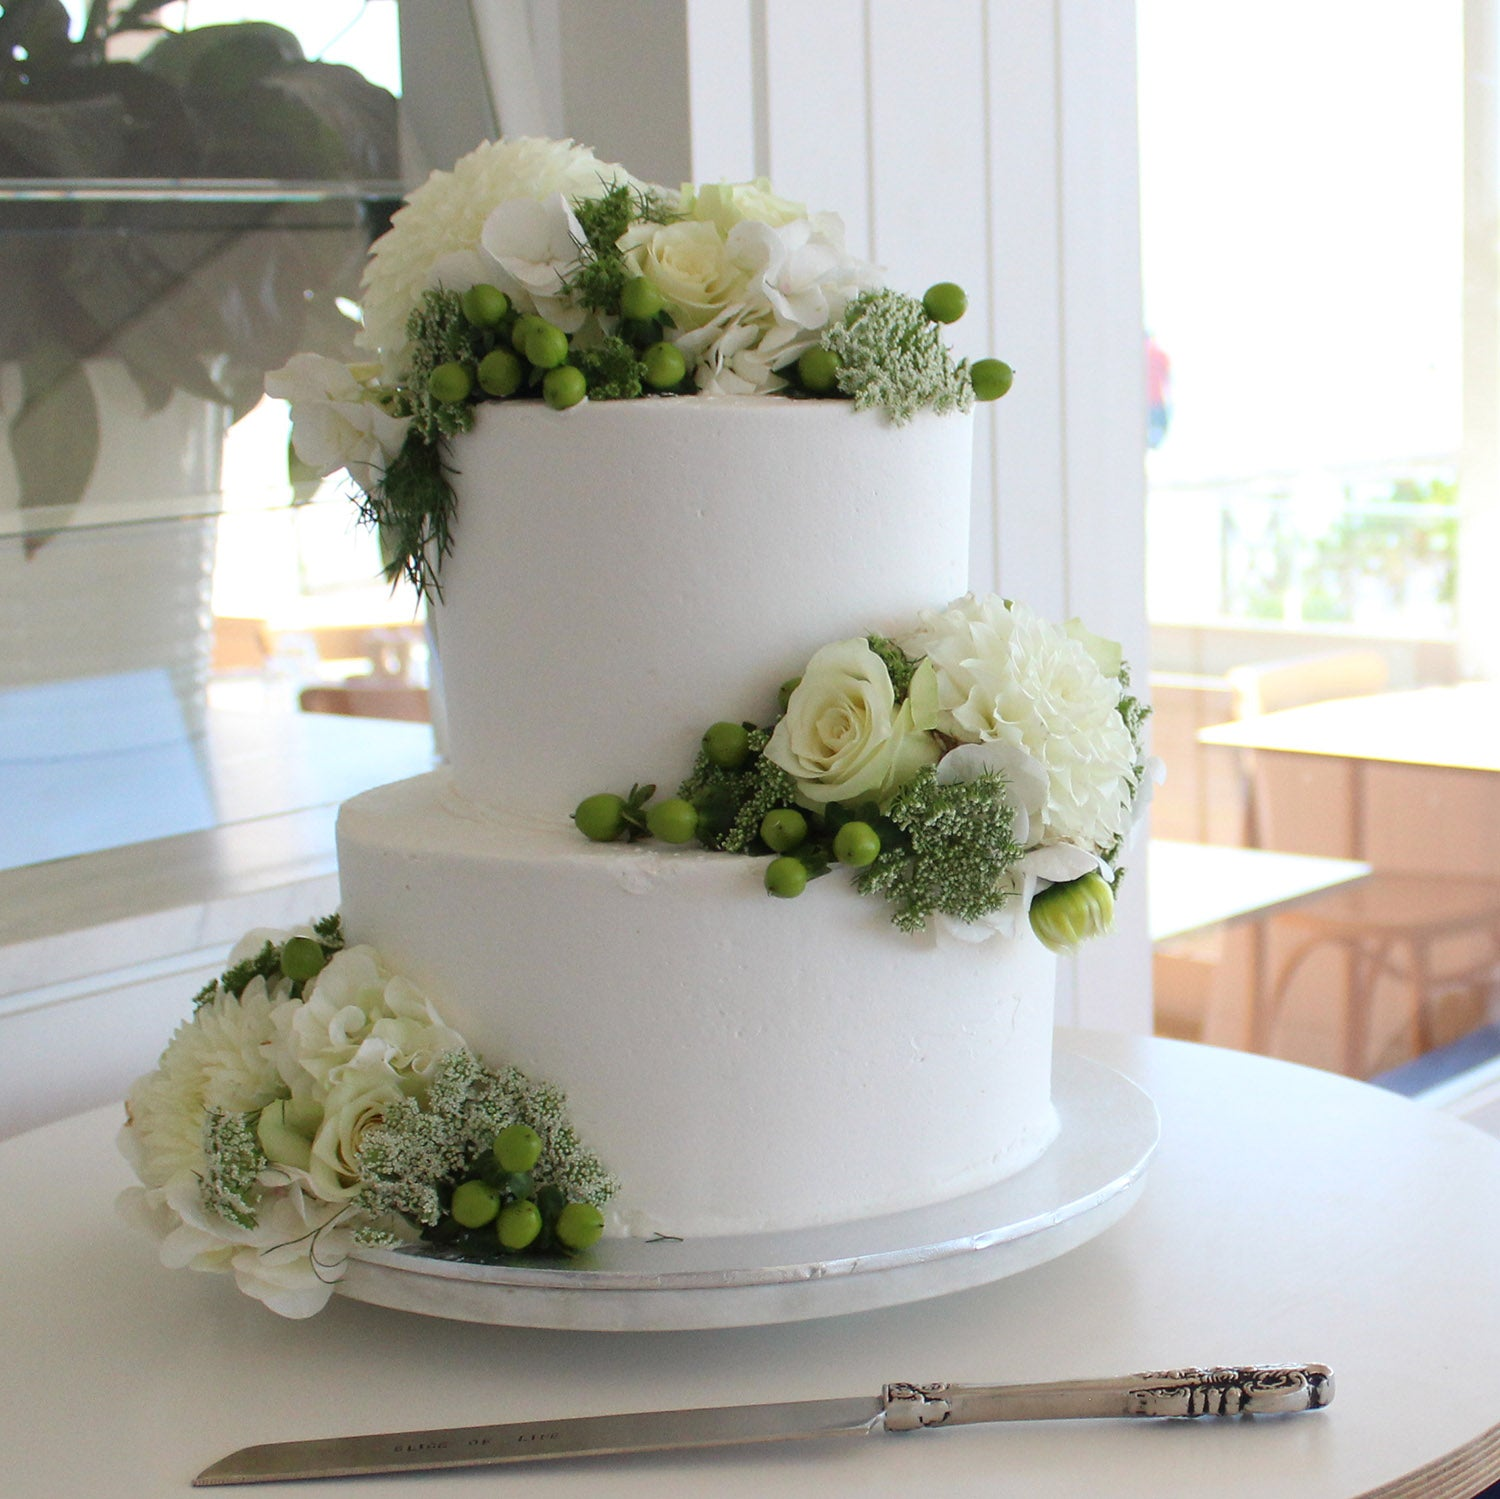 2 Tier Buttercream with Scatted flowers